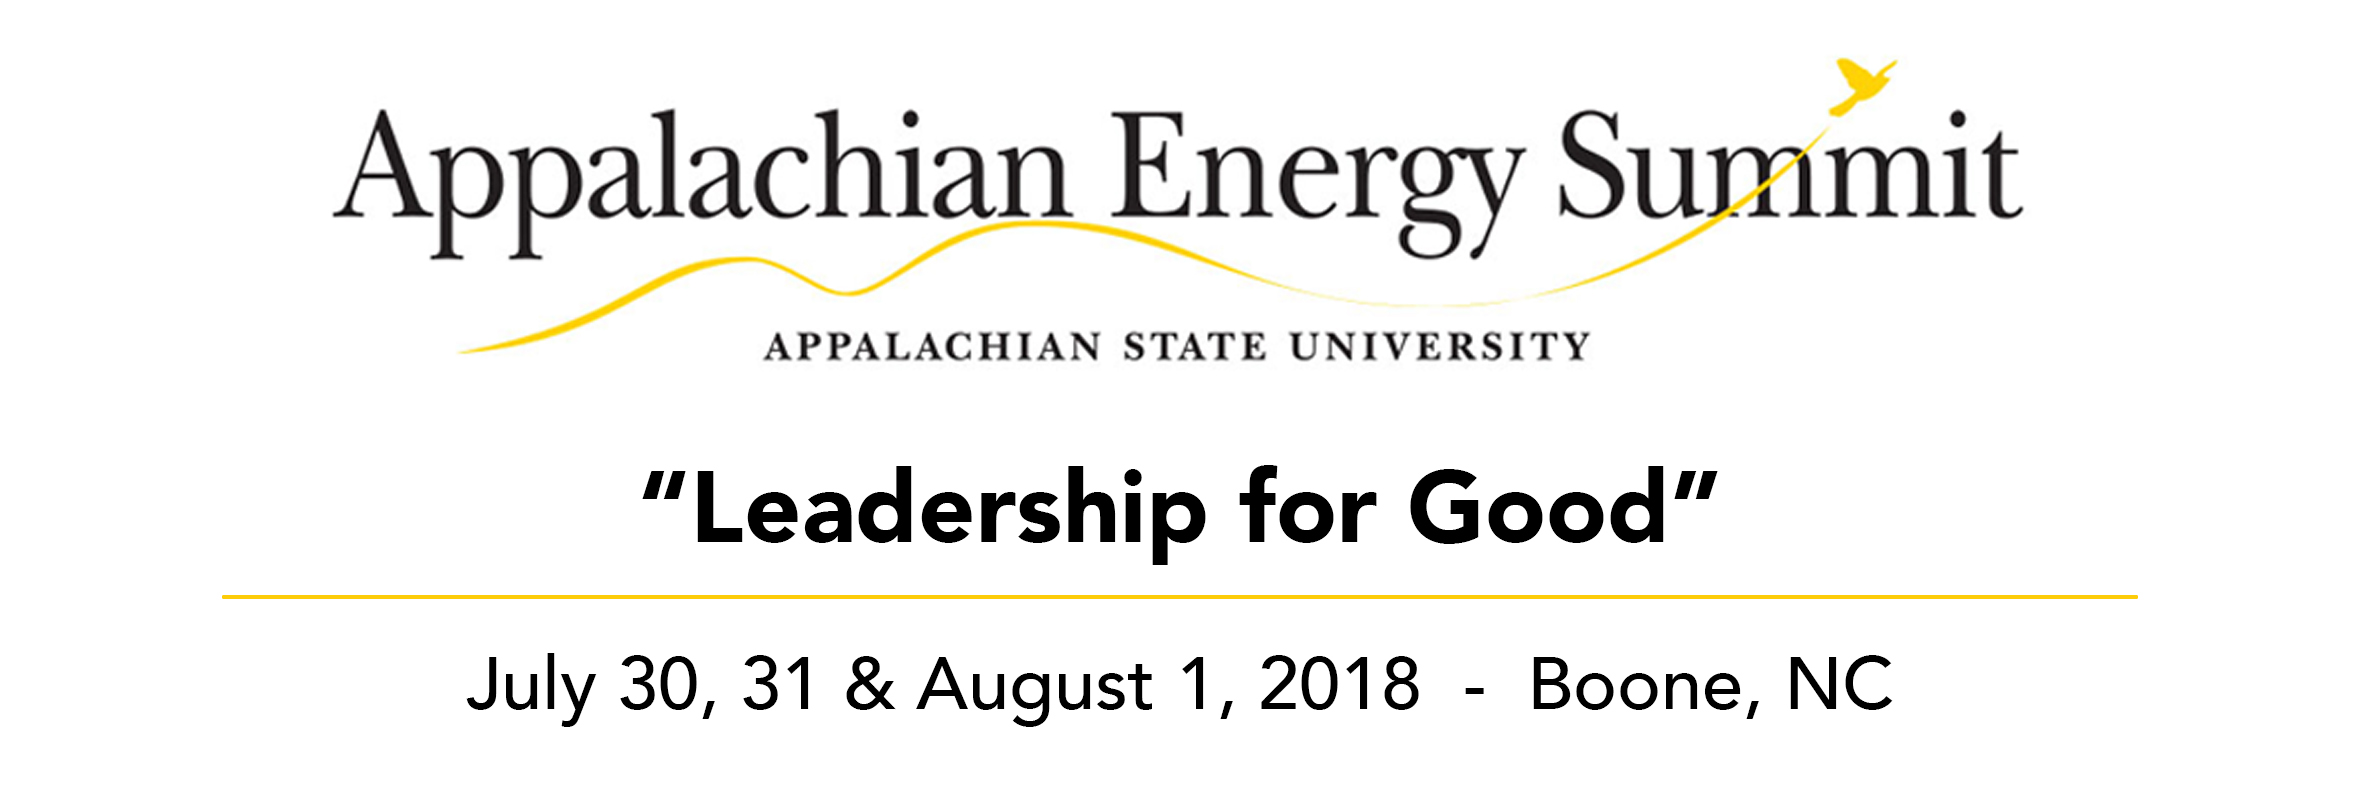 2018 Mid-year Energy Summit, February 20th, 2018 - Appalachian Energy Summit July 20, 31 and August 1, 2018